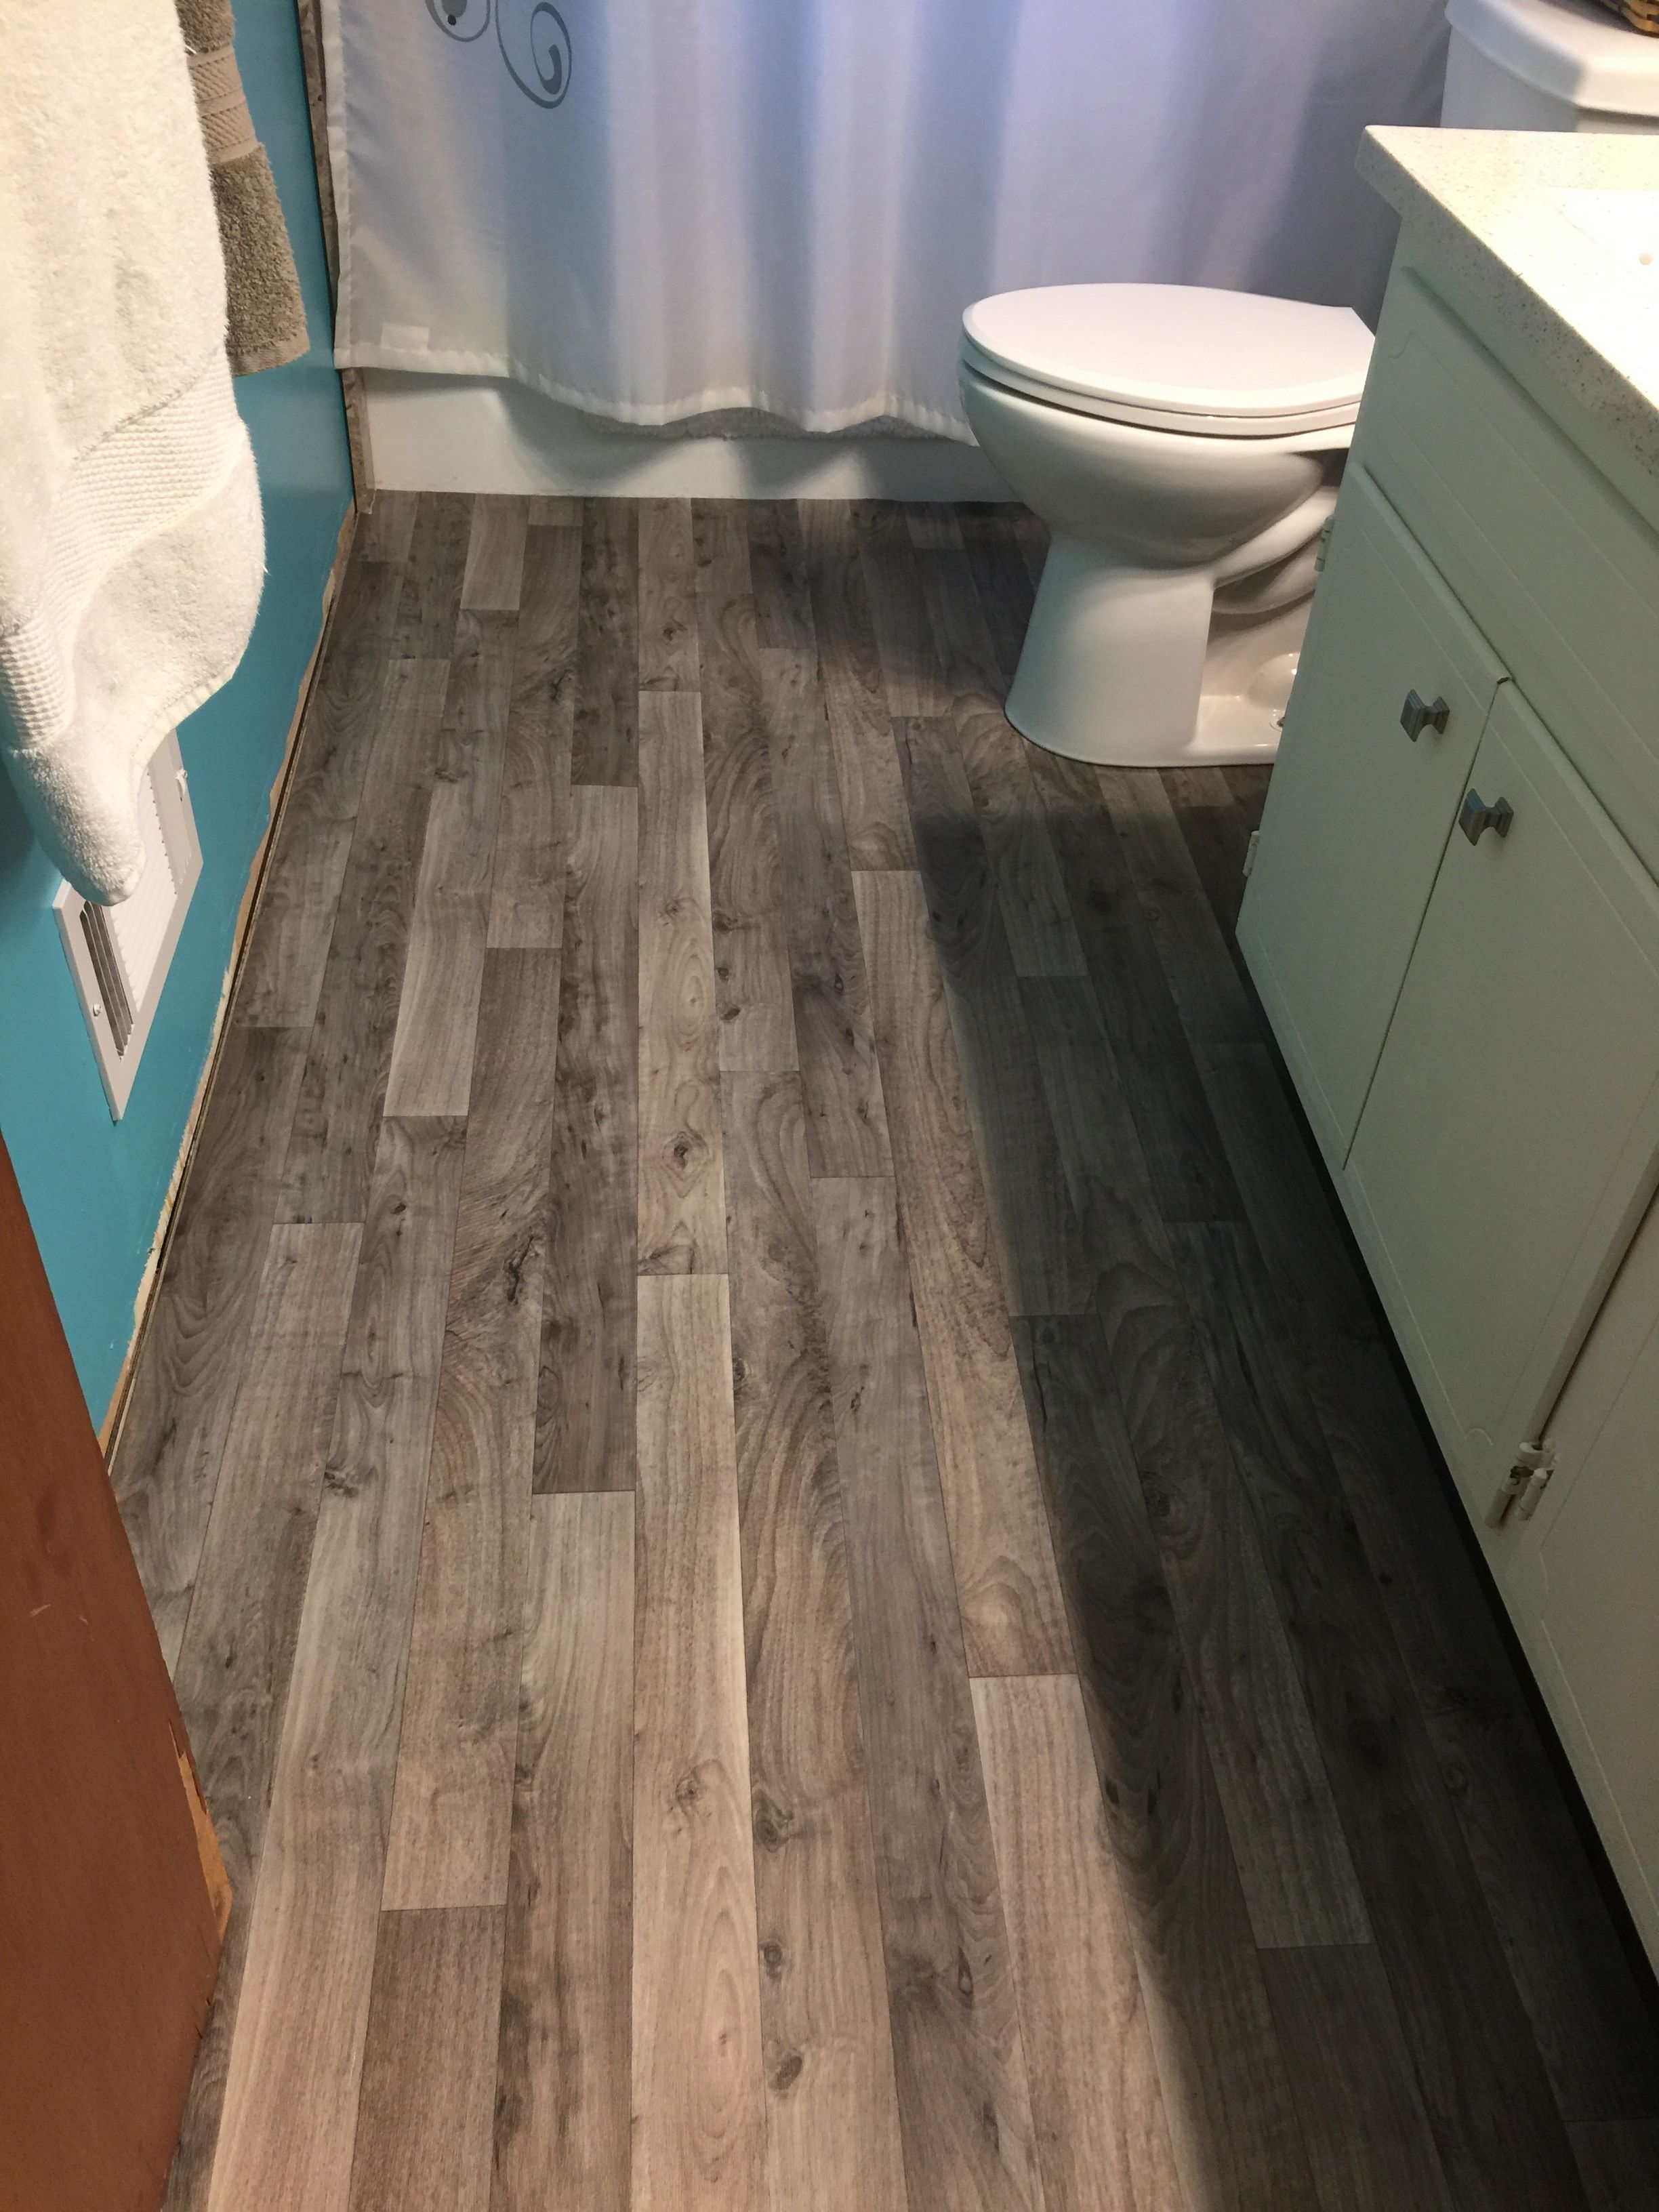 IVC Impact sheet vinyl flooring Midland Timber Menards I